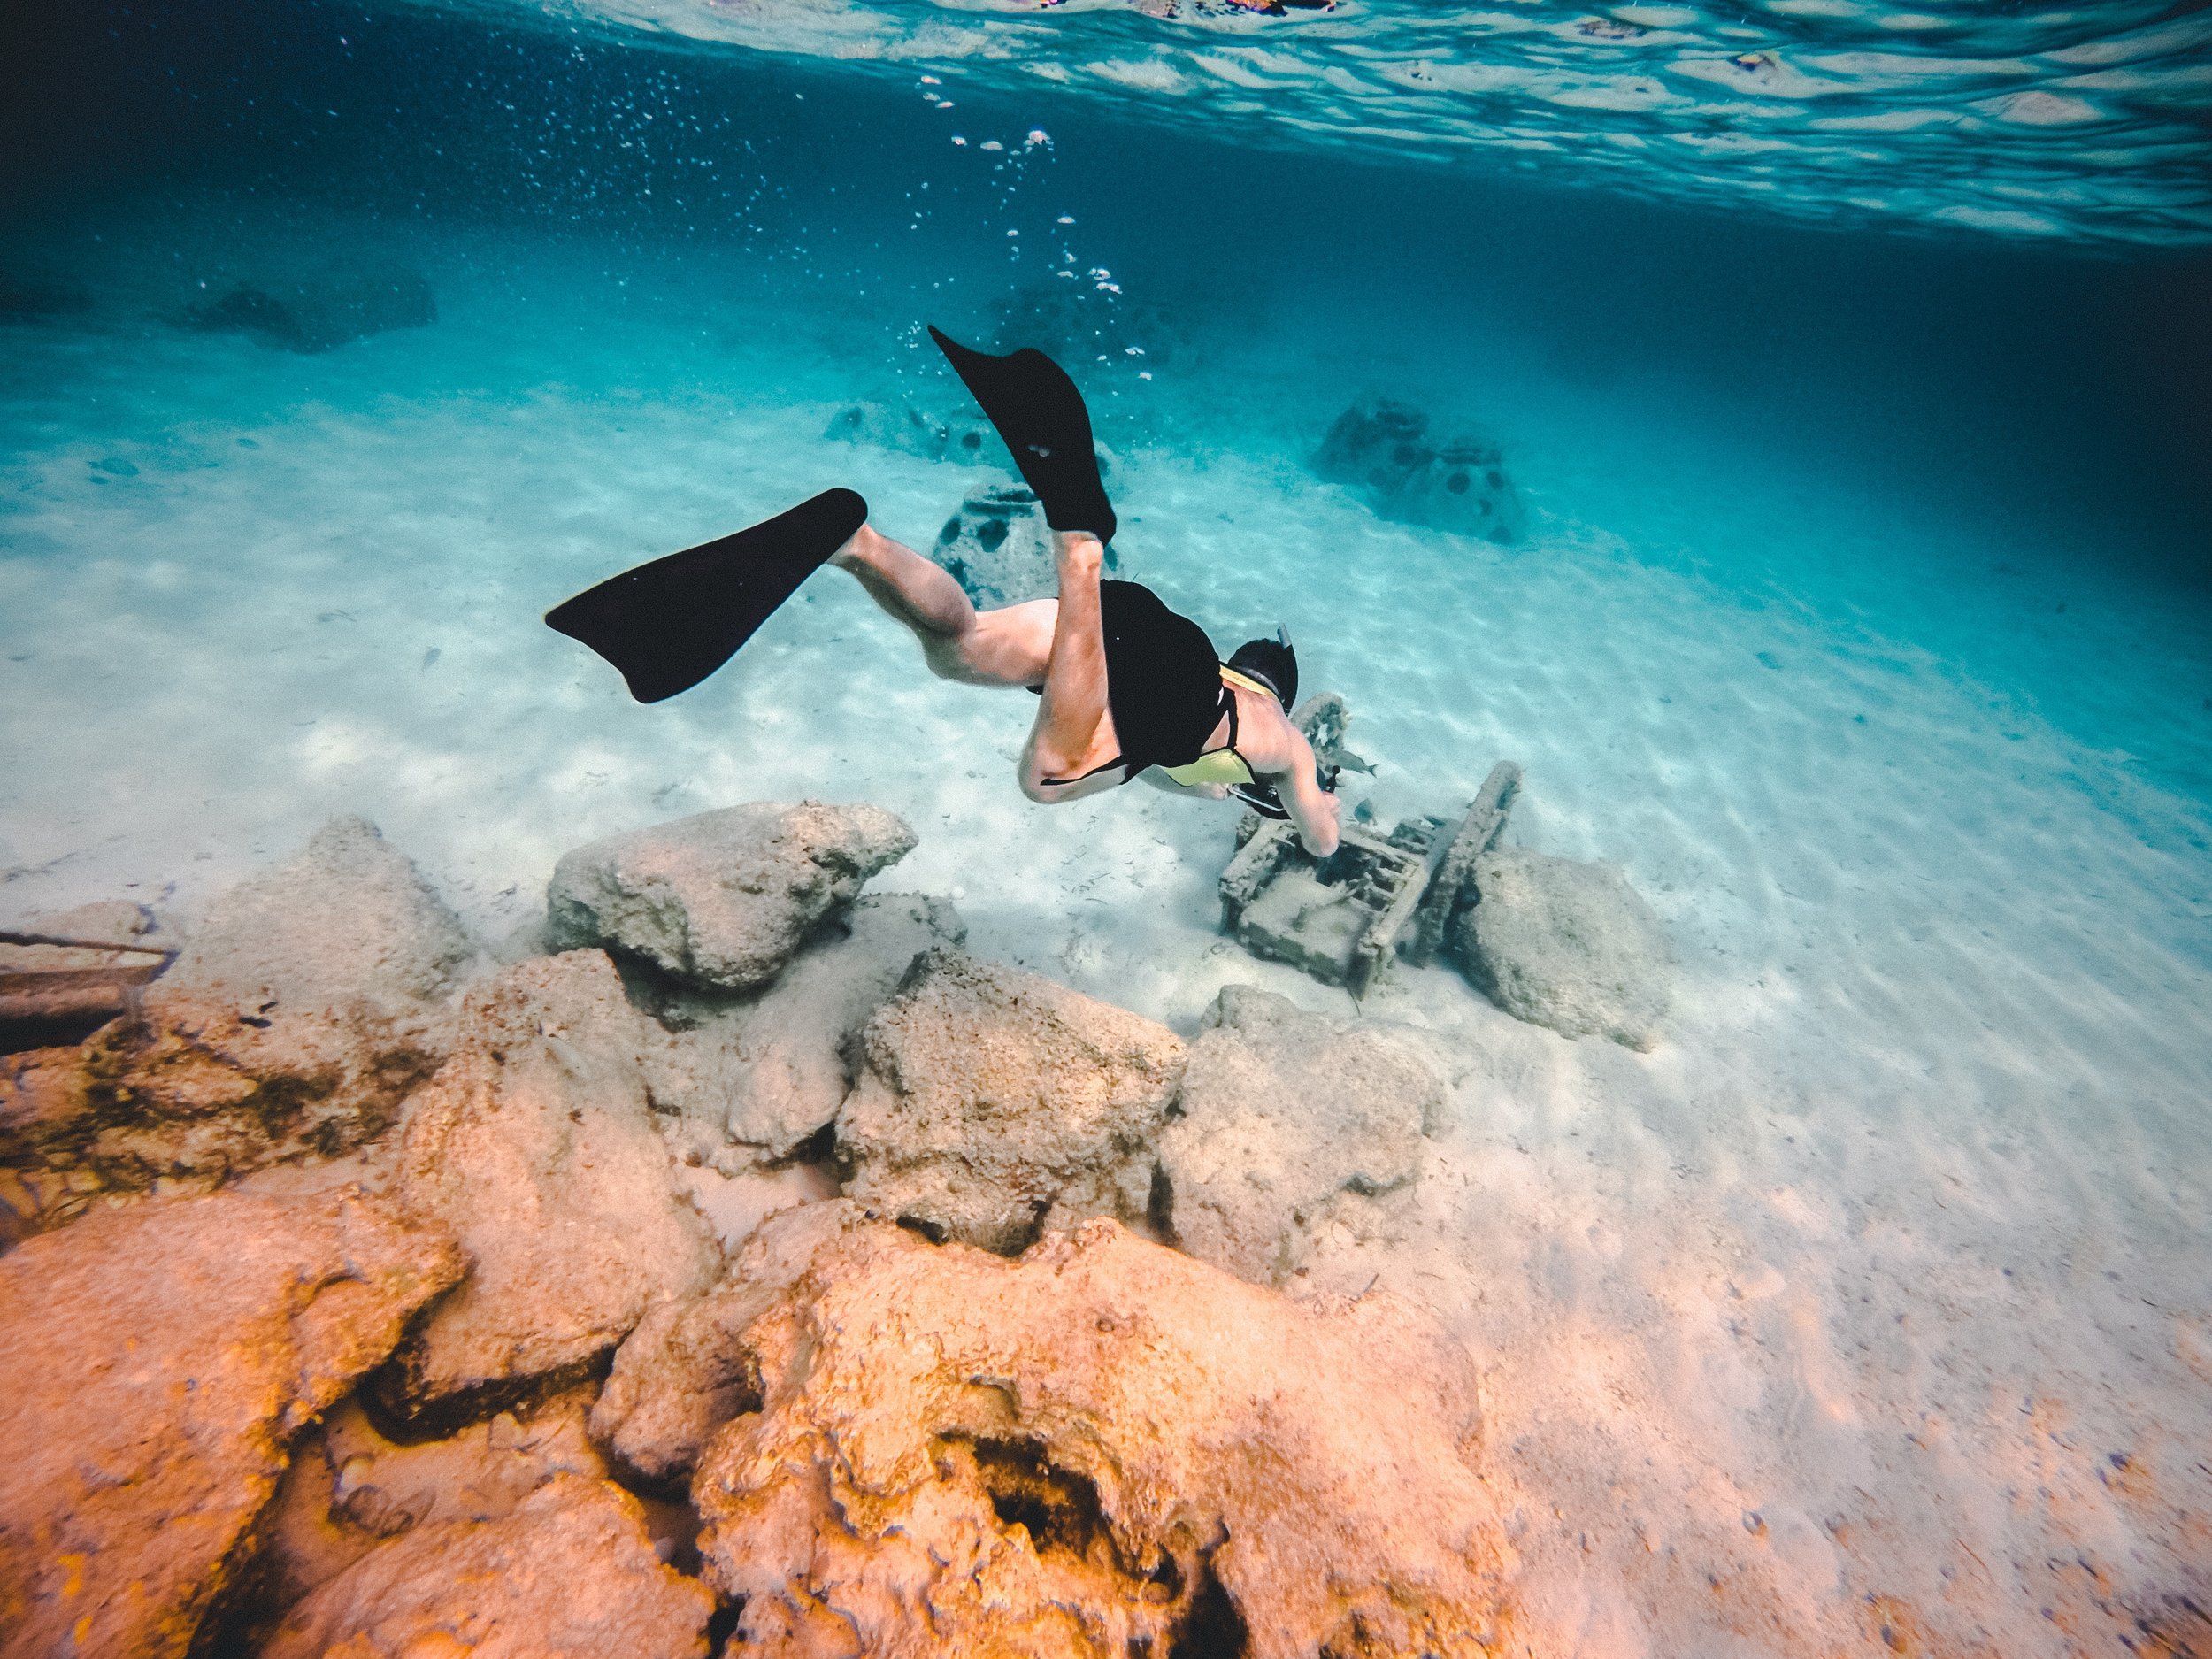 A diver exploring the crystal-clear waters of the Bahamas.